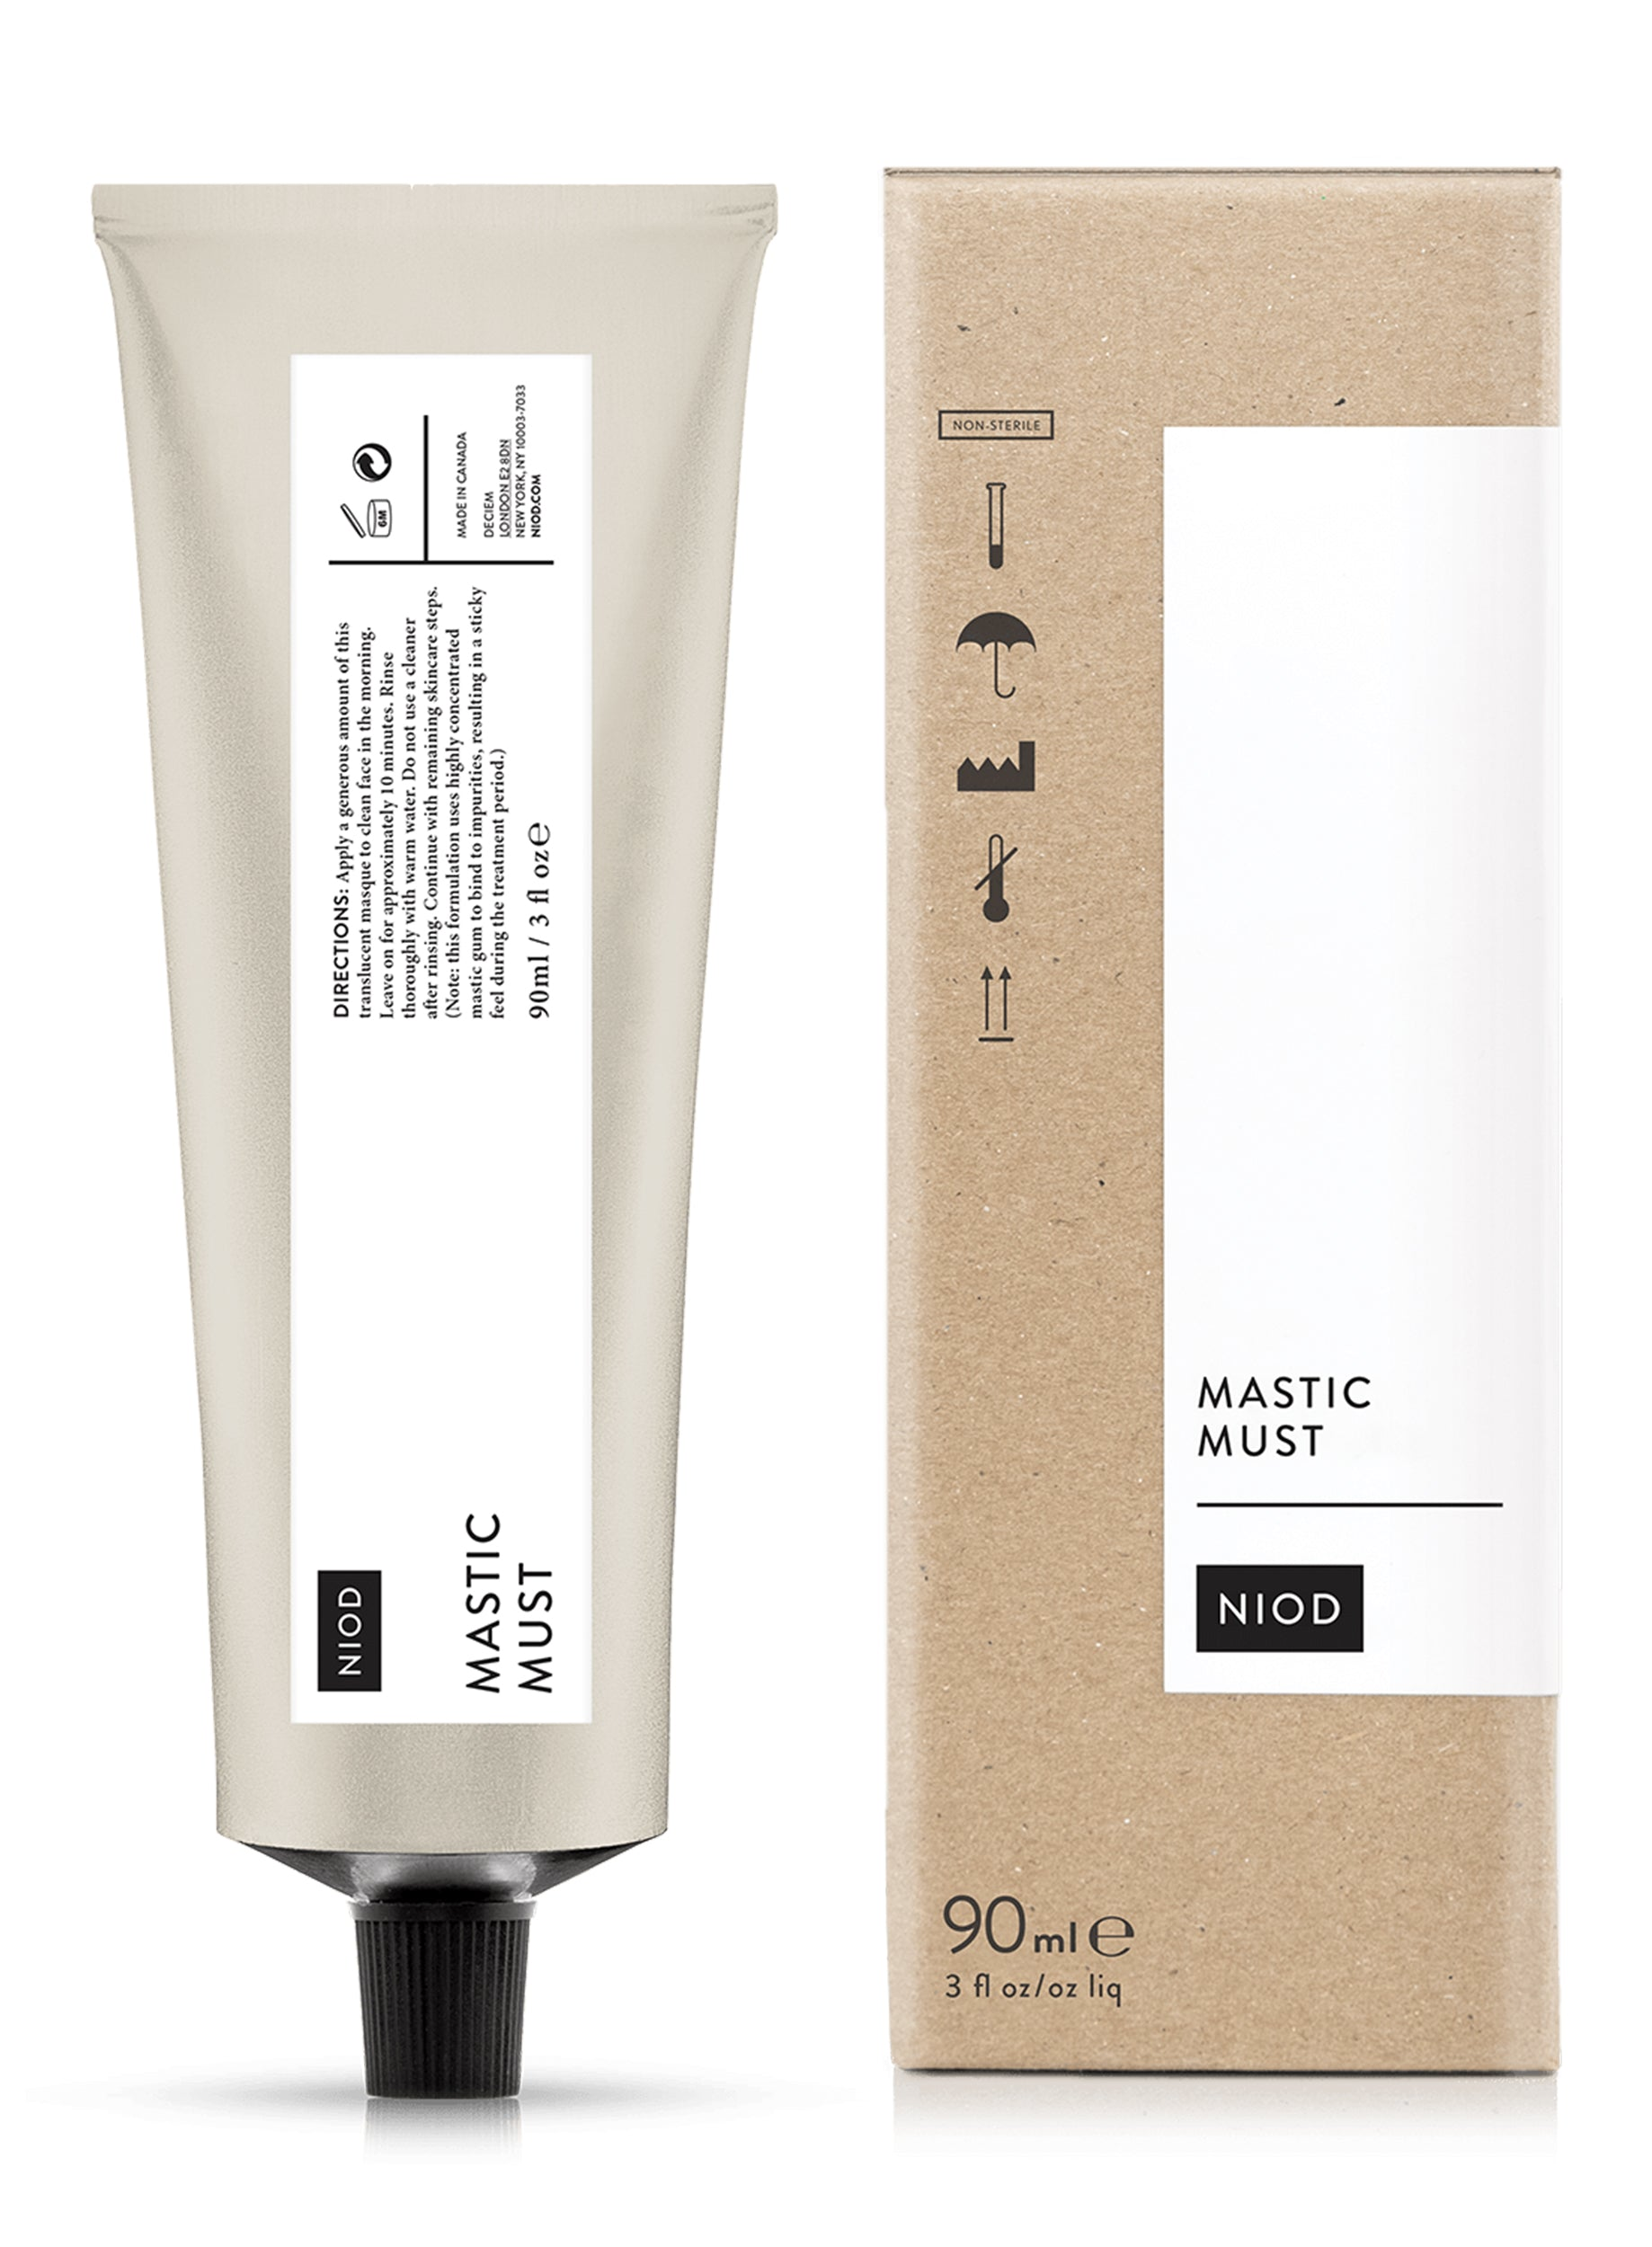 NIOD Mastic Must 90ml